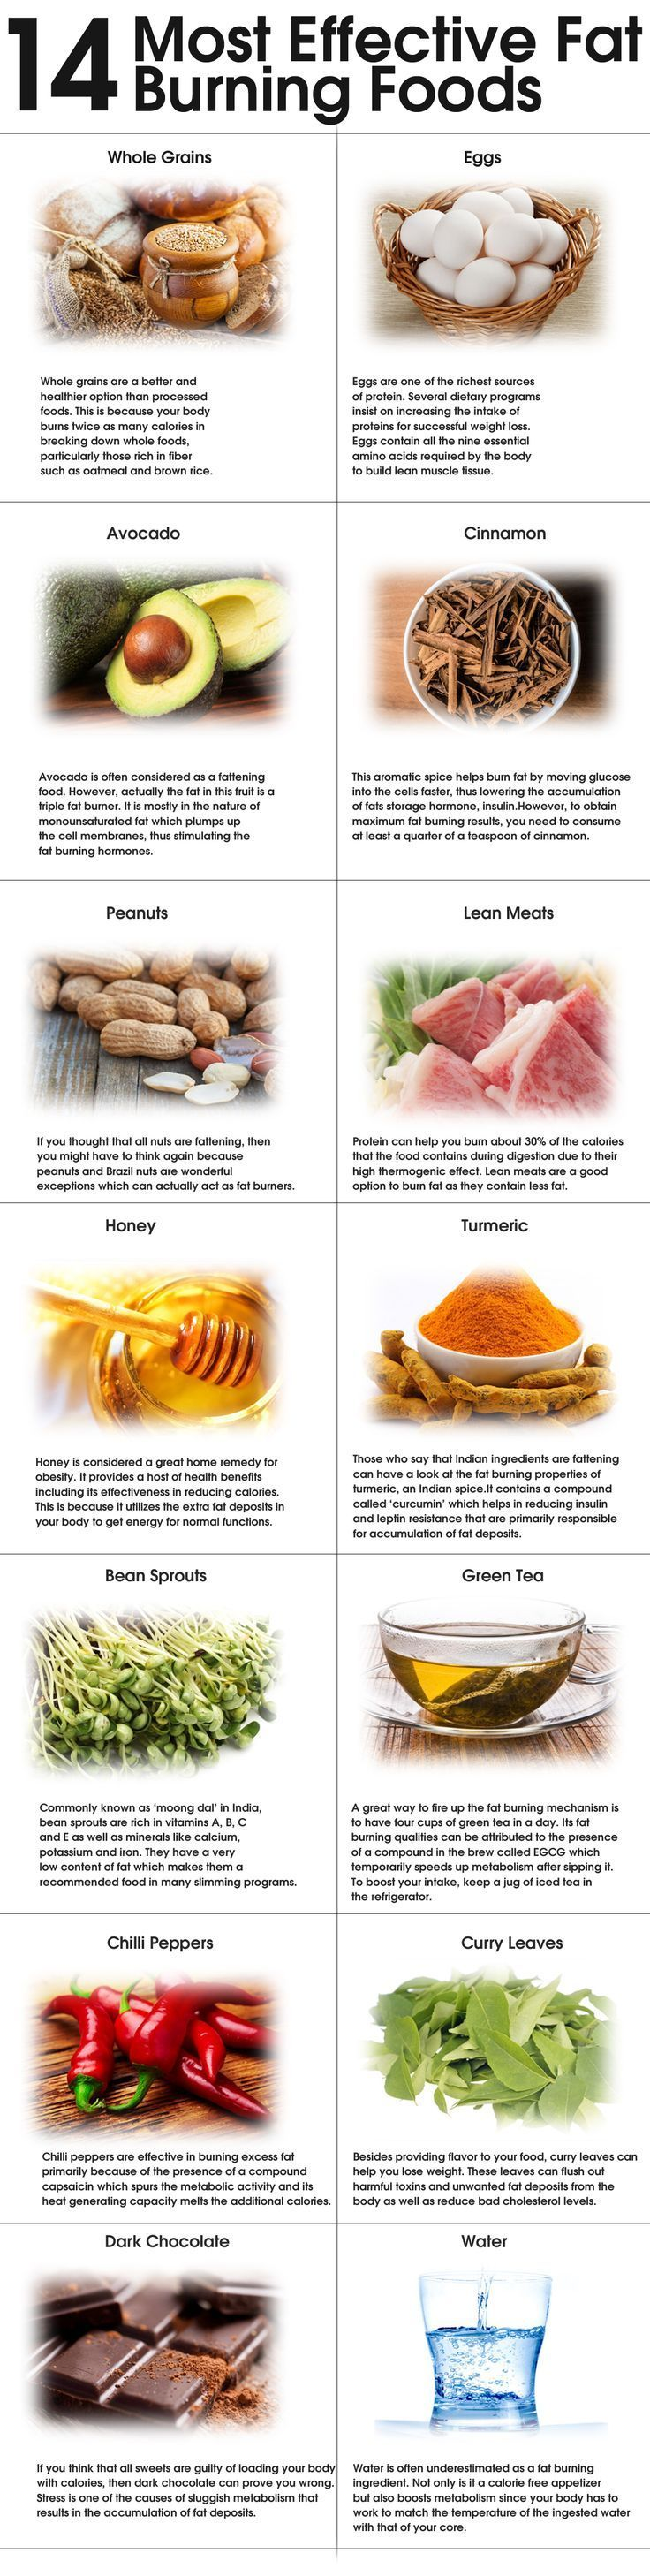 14 Most Effective Fat Burning Foods - Favorite Pins